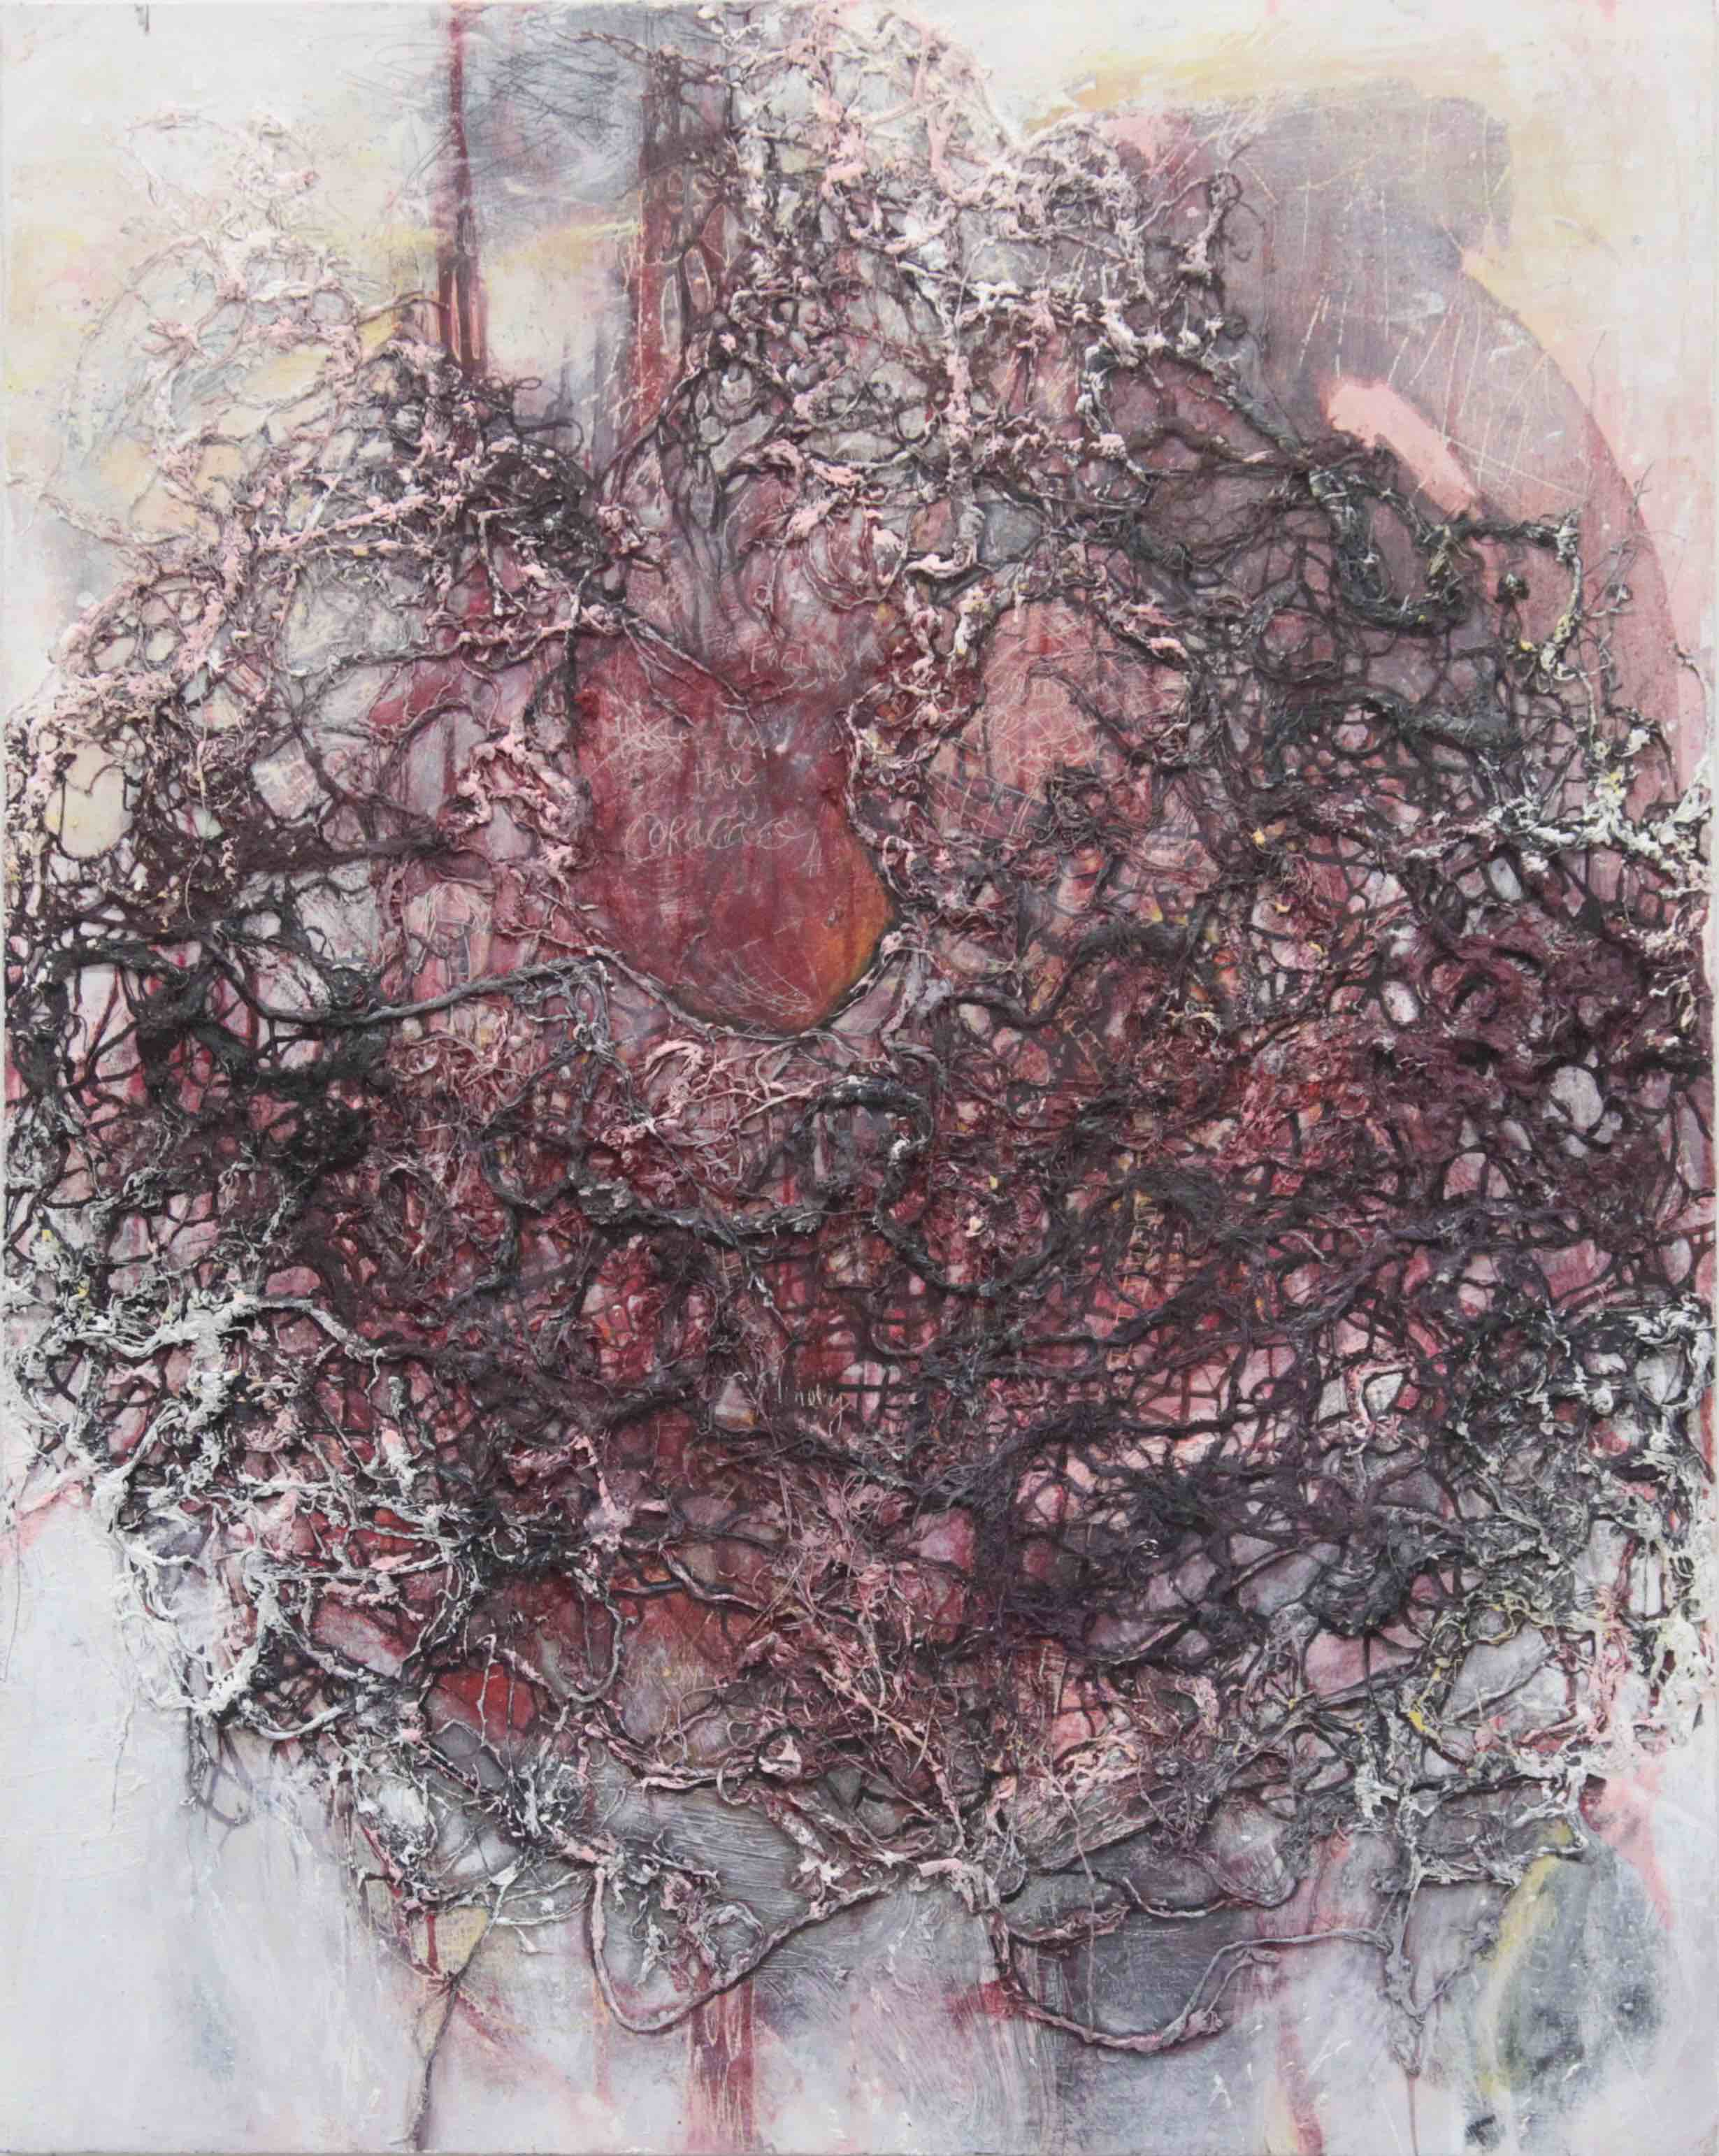 Coração / 2011 / oil, beeswax, thread on panel / 31.5 x 25.19 inches / 80 x 64 cm